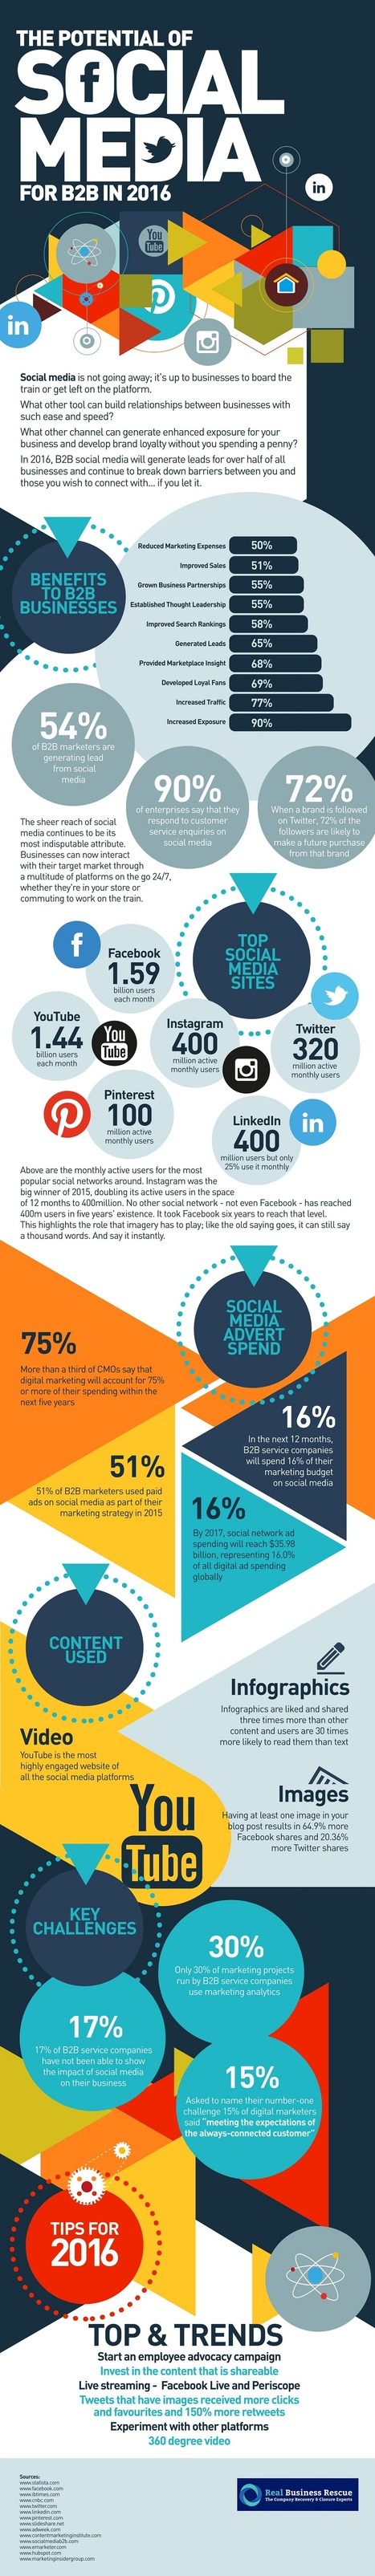 The Potential of Social Media for B2B in 2016 #Infographic | Mastering Facebook, Google+, Twitter | Scoop.it